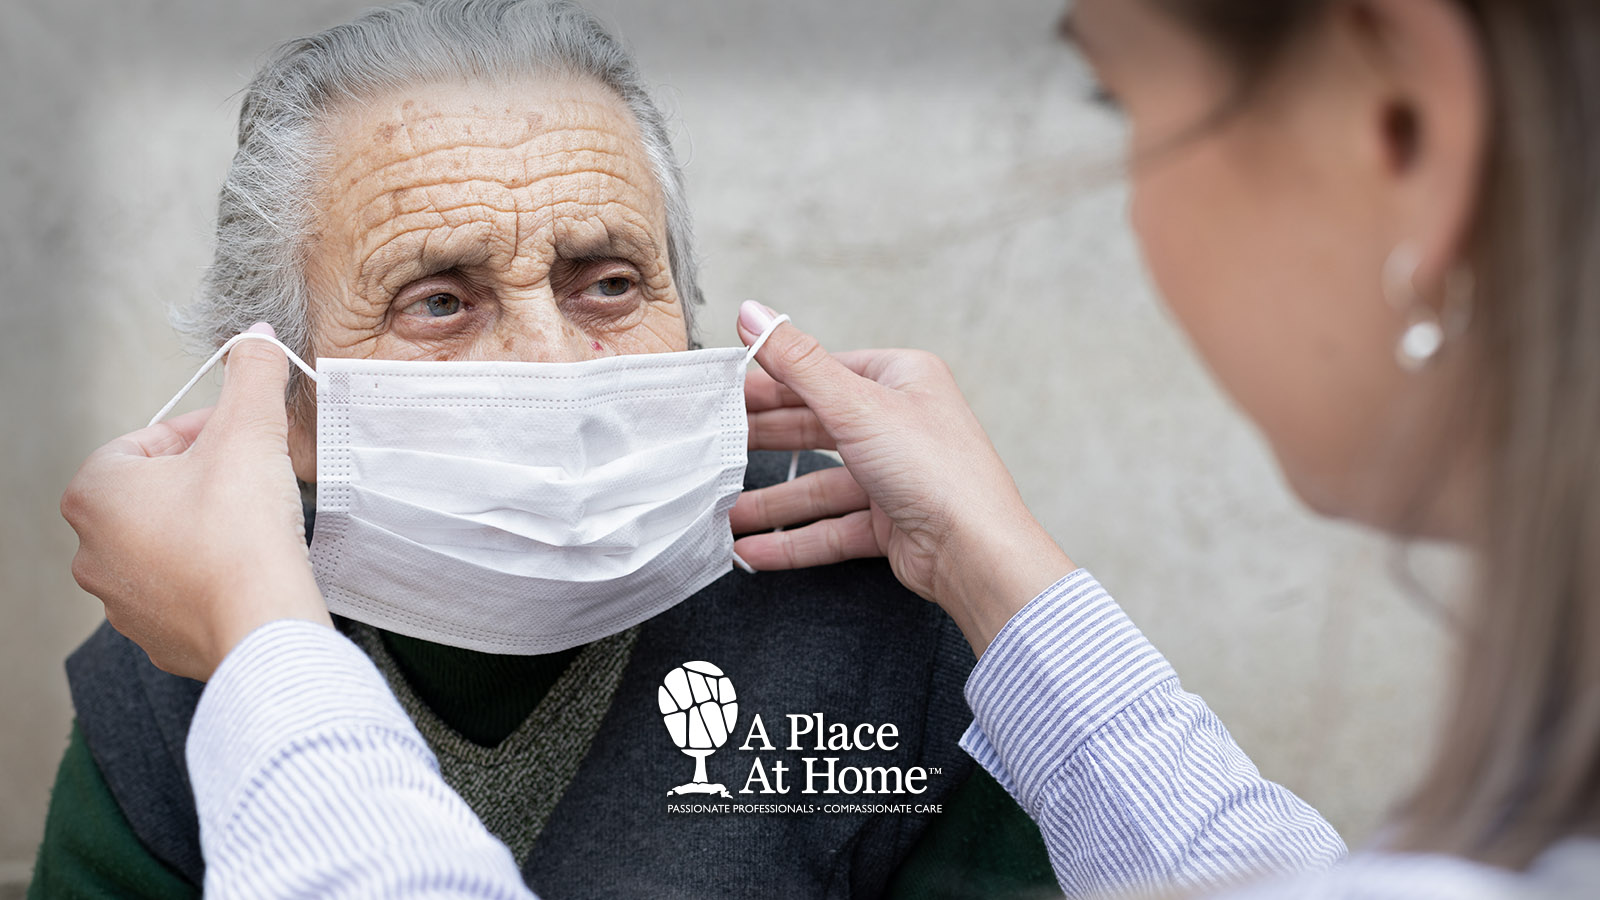 A caregiver helping place a mask on a senior.